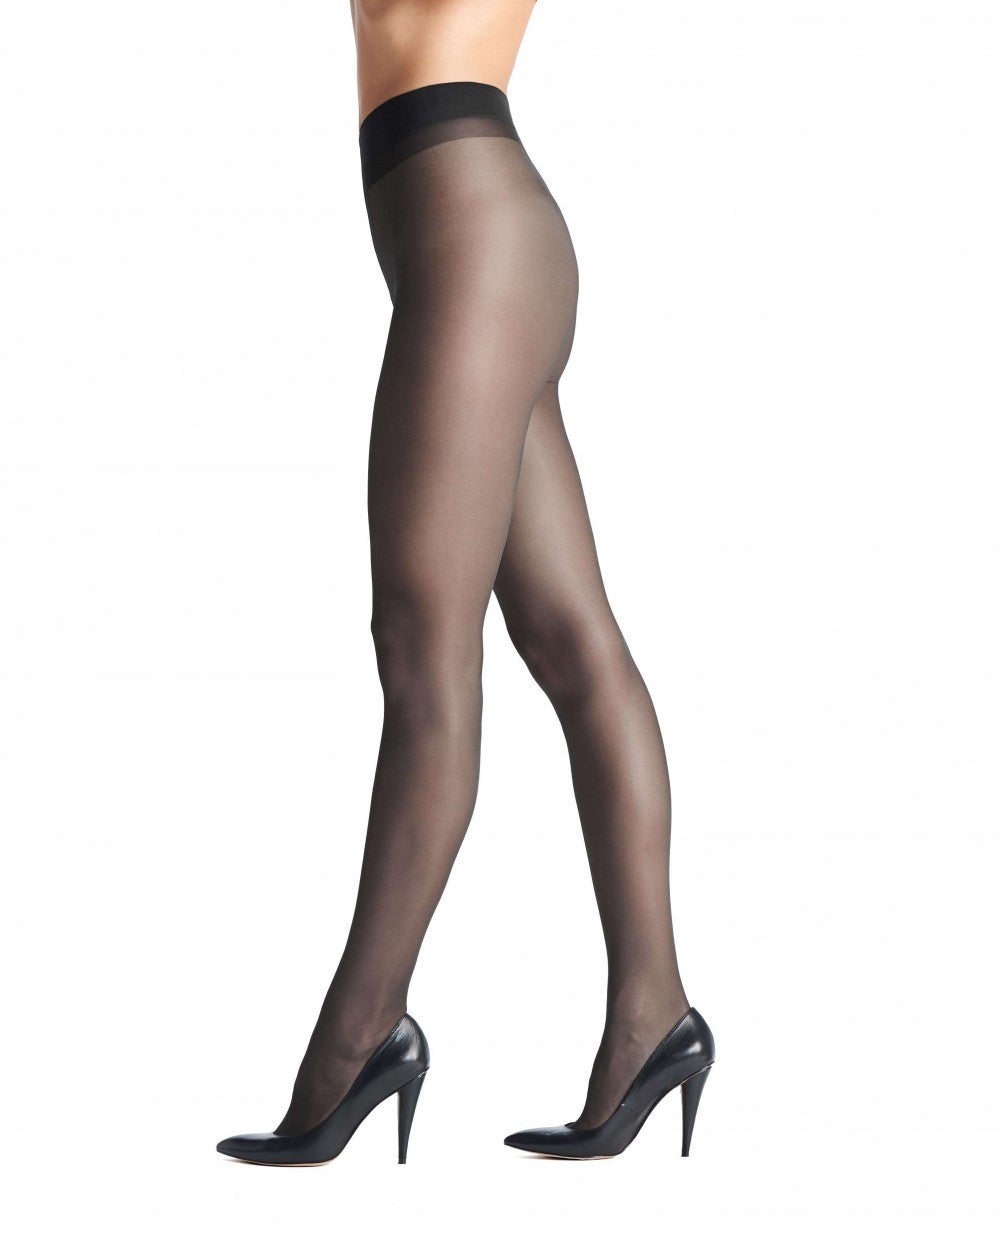 OROBLU Tights Magie 20 Pure Beauty, SINGAPOUR